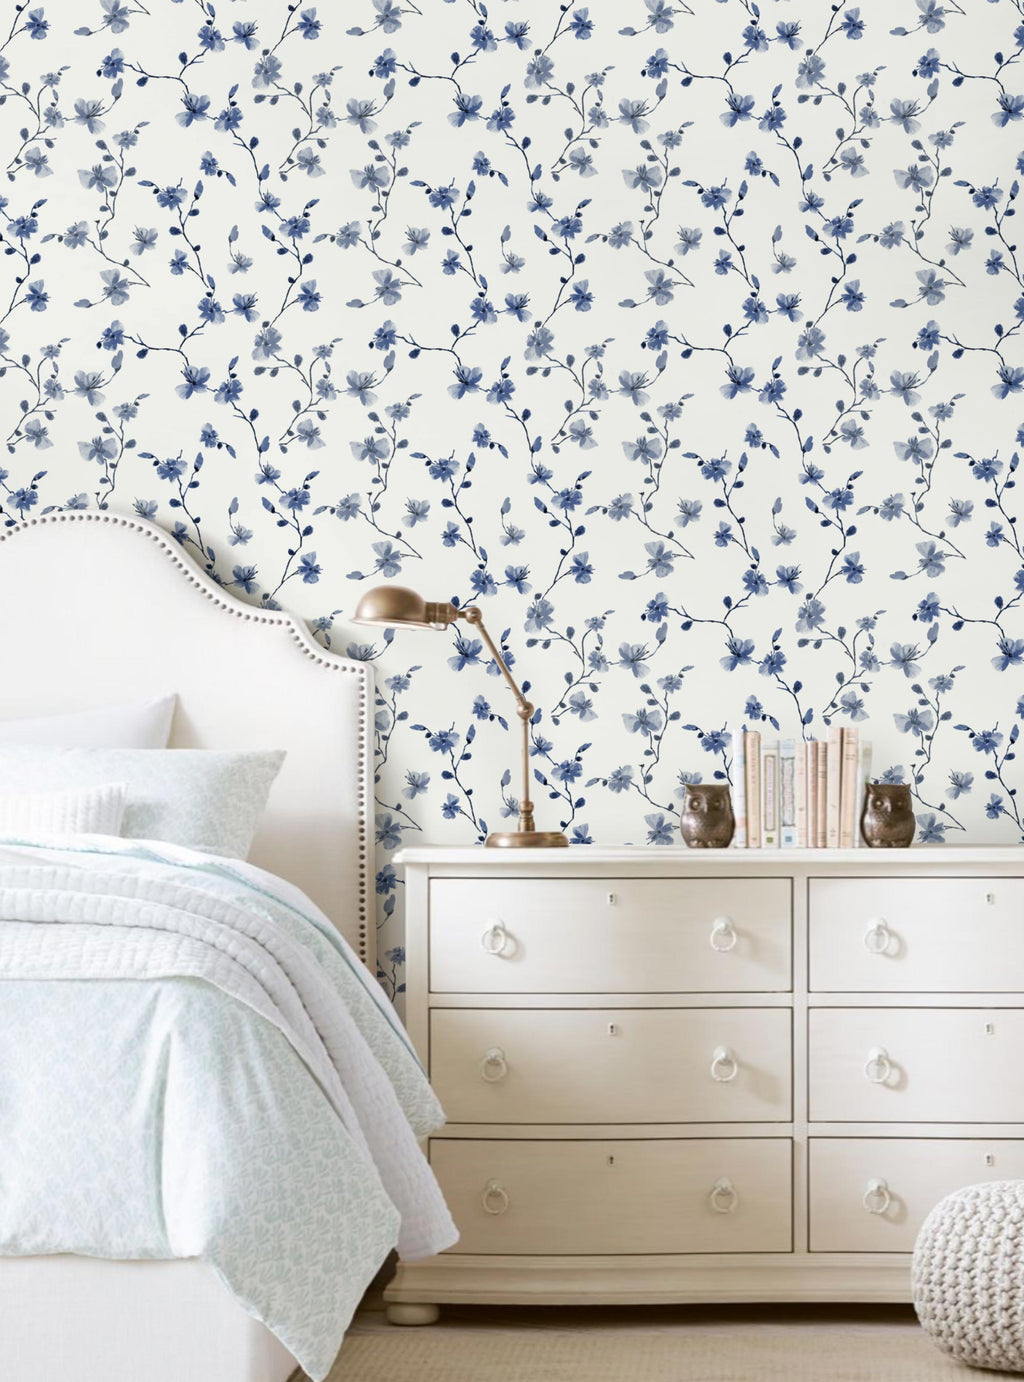 Blue Petal Climbing Flowers Wallpaper - Peel and Stick